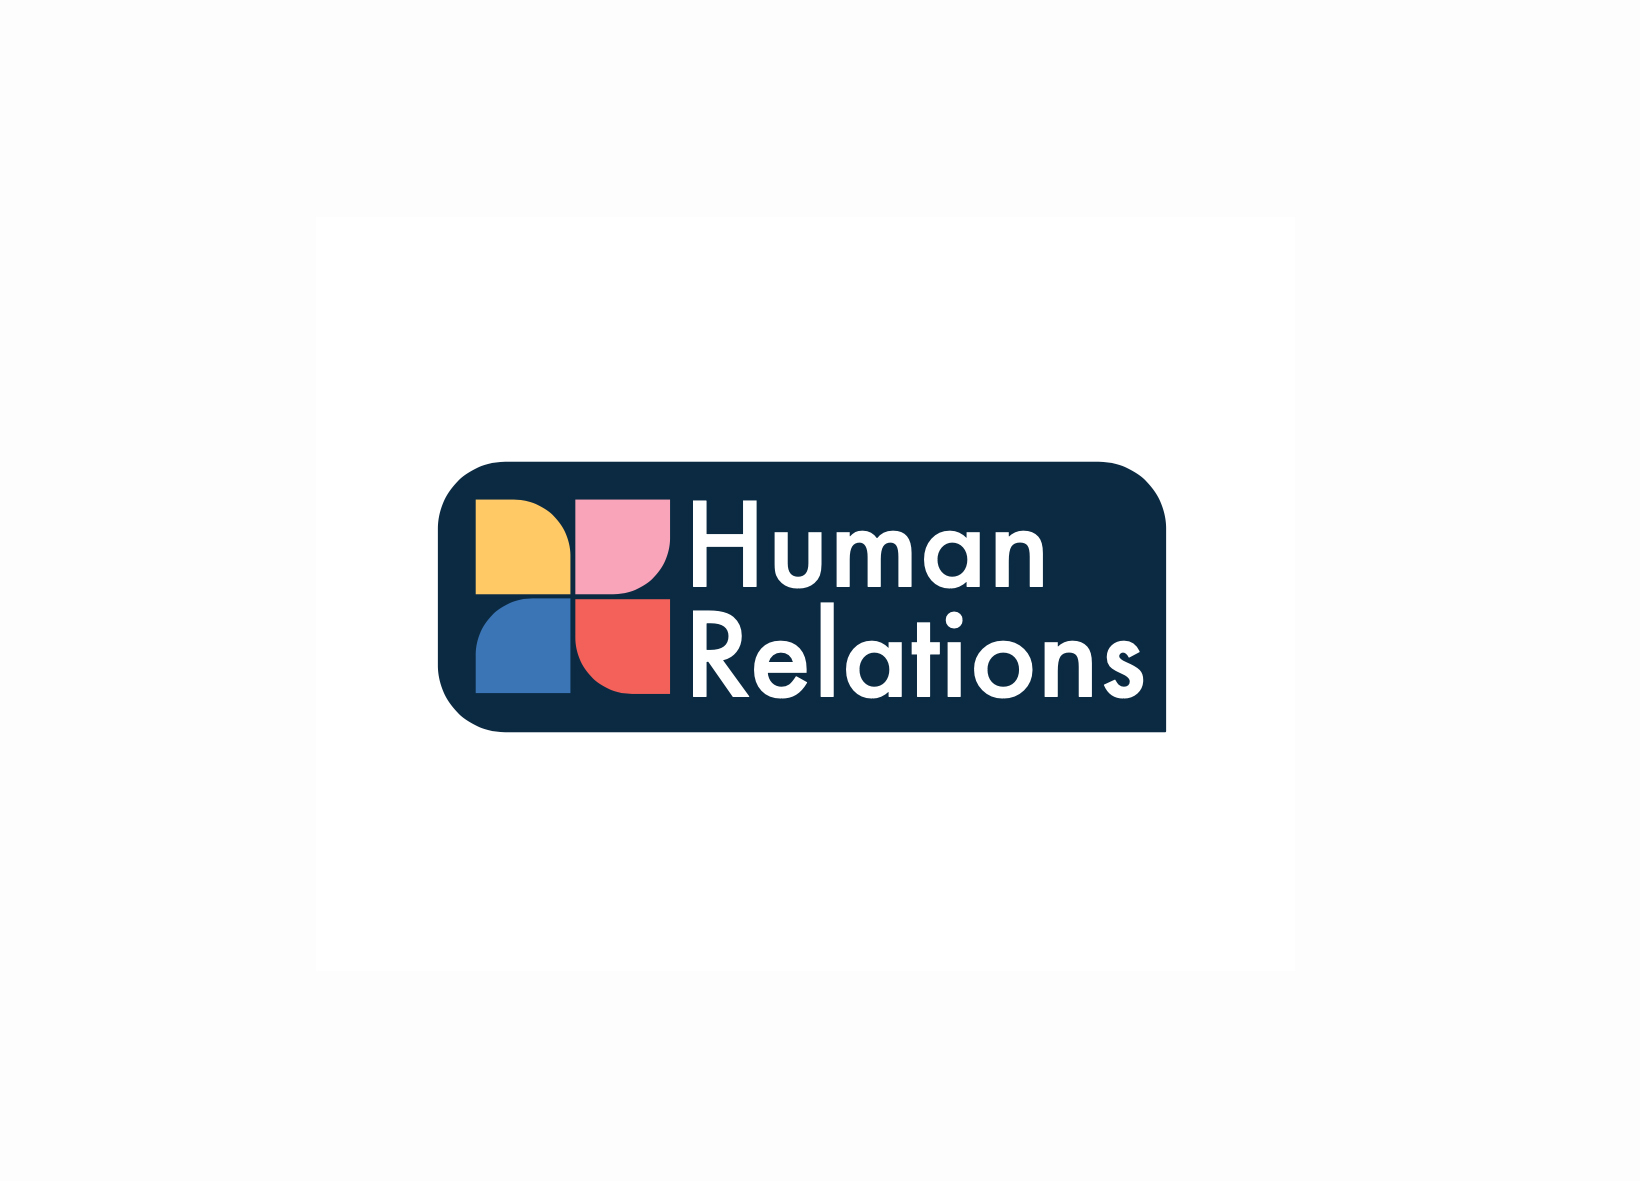 human relations branding shown in full colour with brand identity showcased